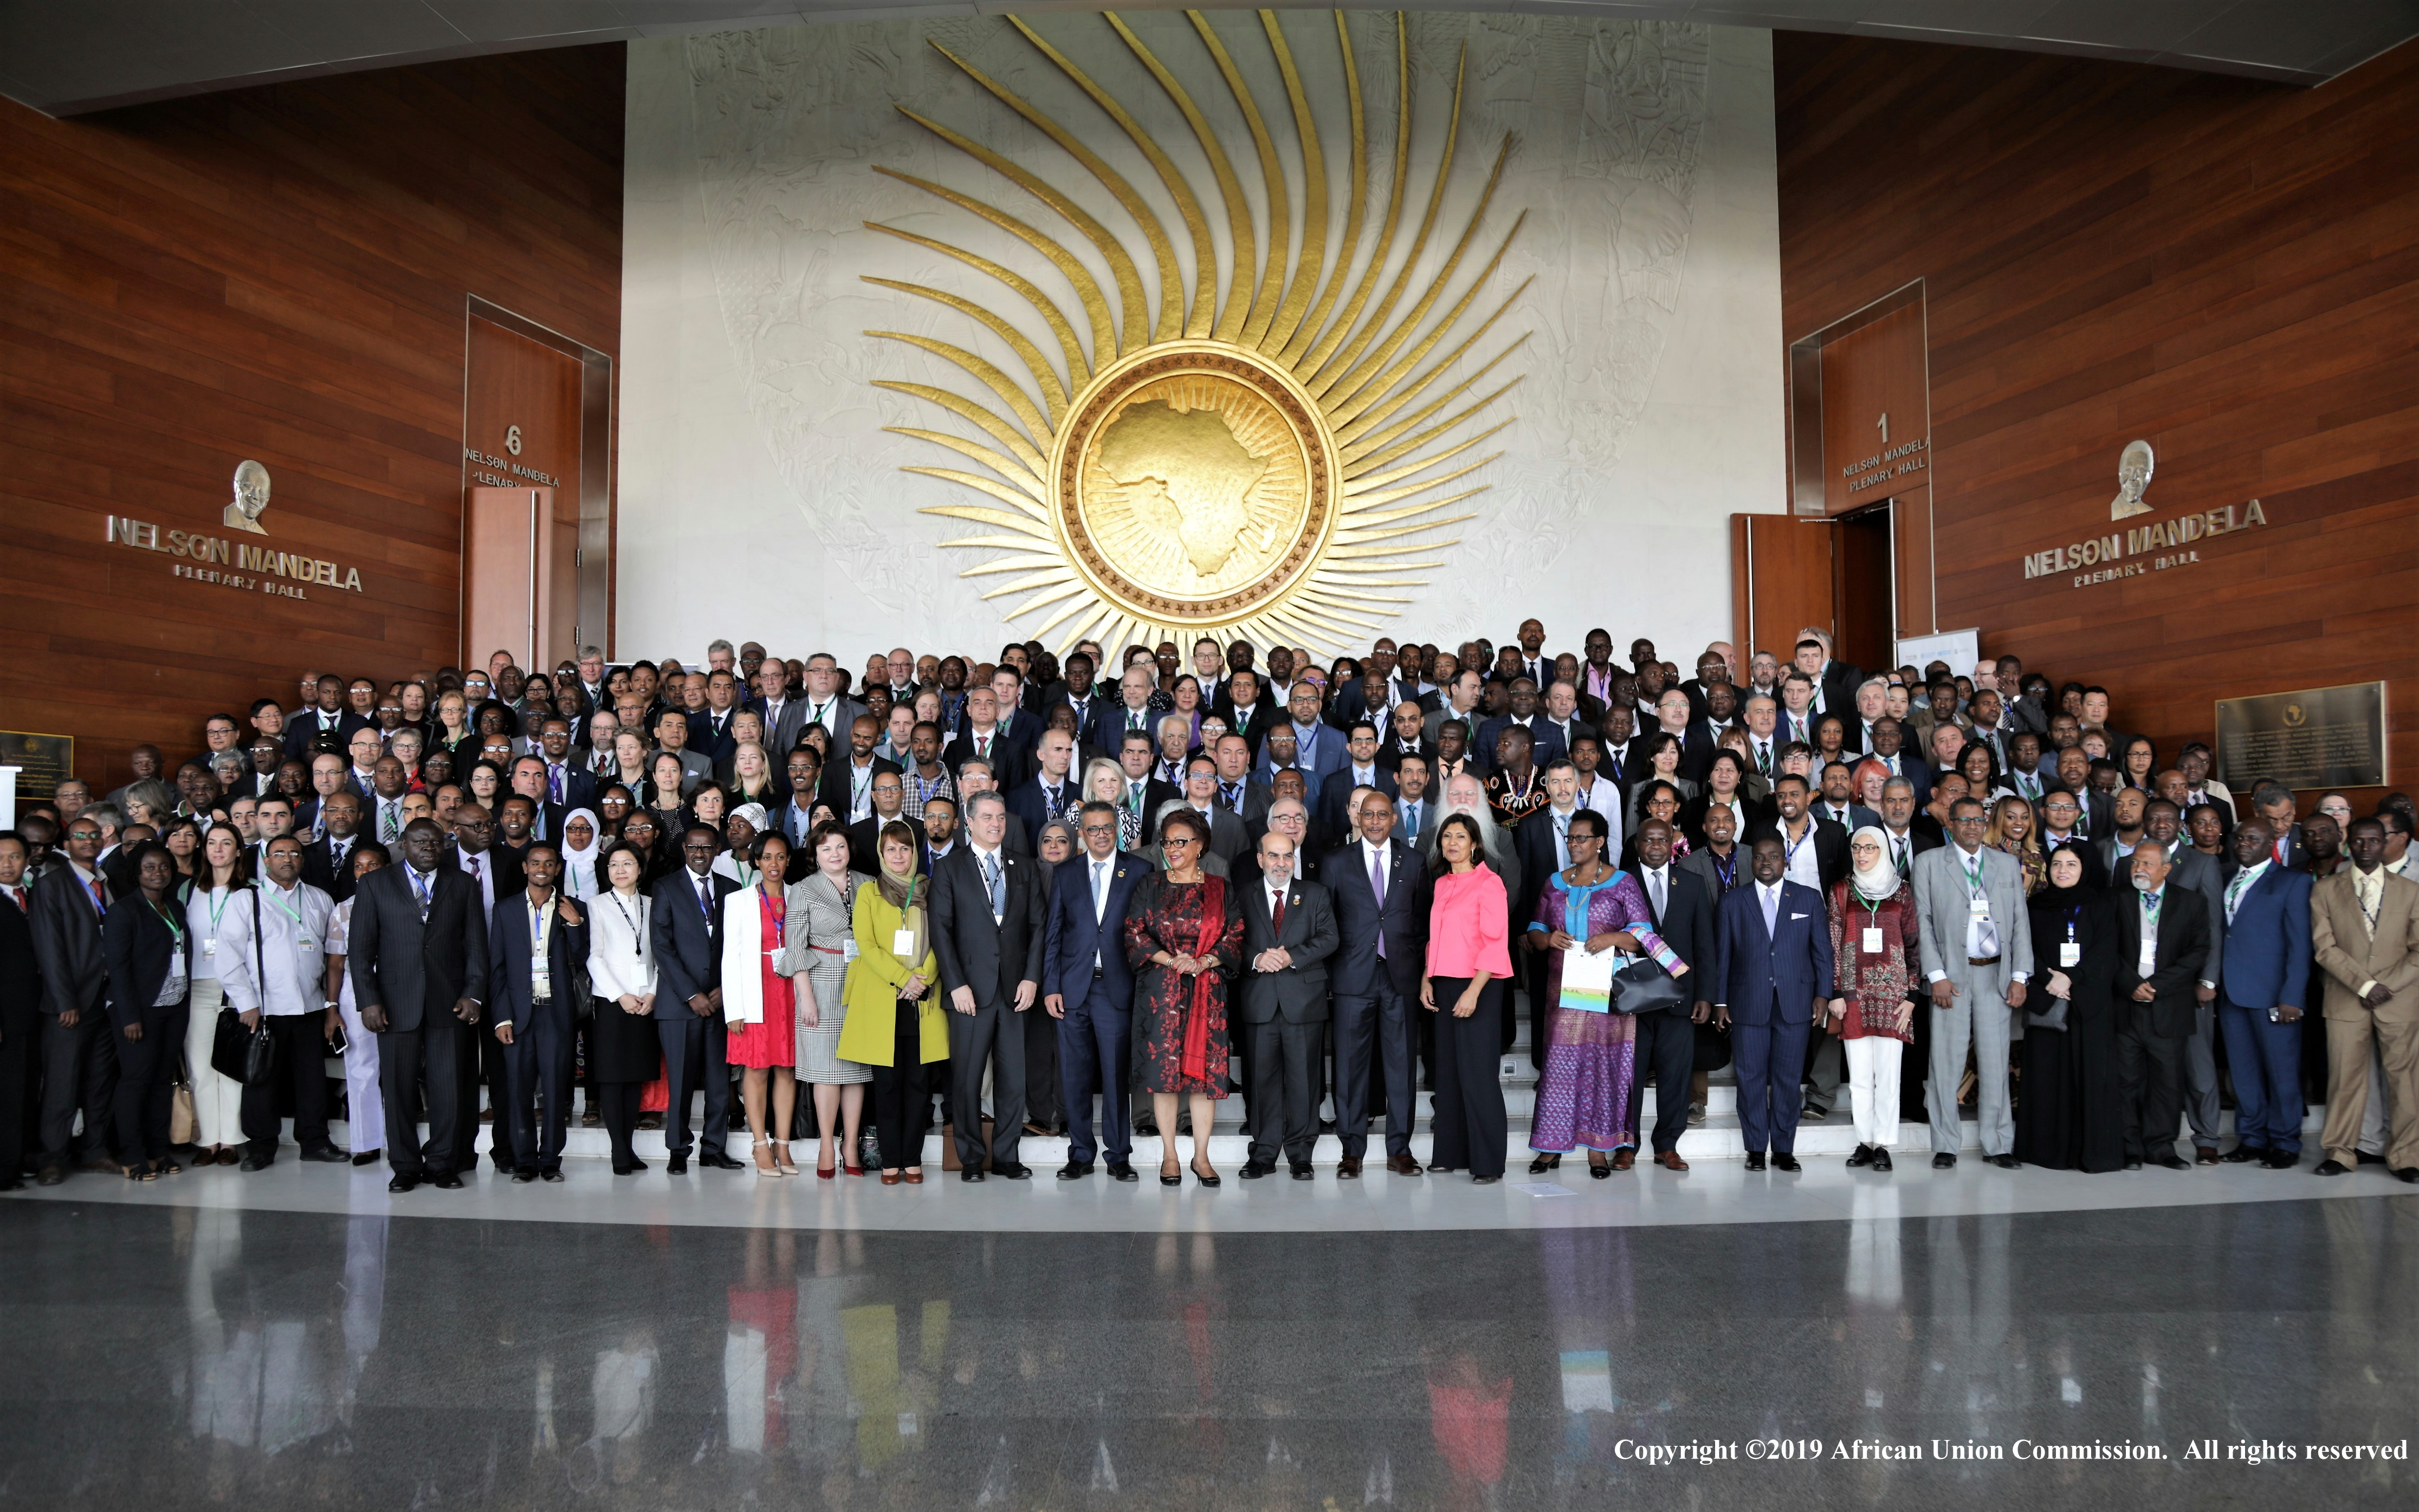 Participants photo: The First FAO/WHO/AU International Food Safety Conference